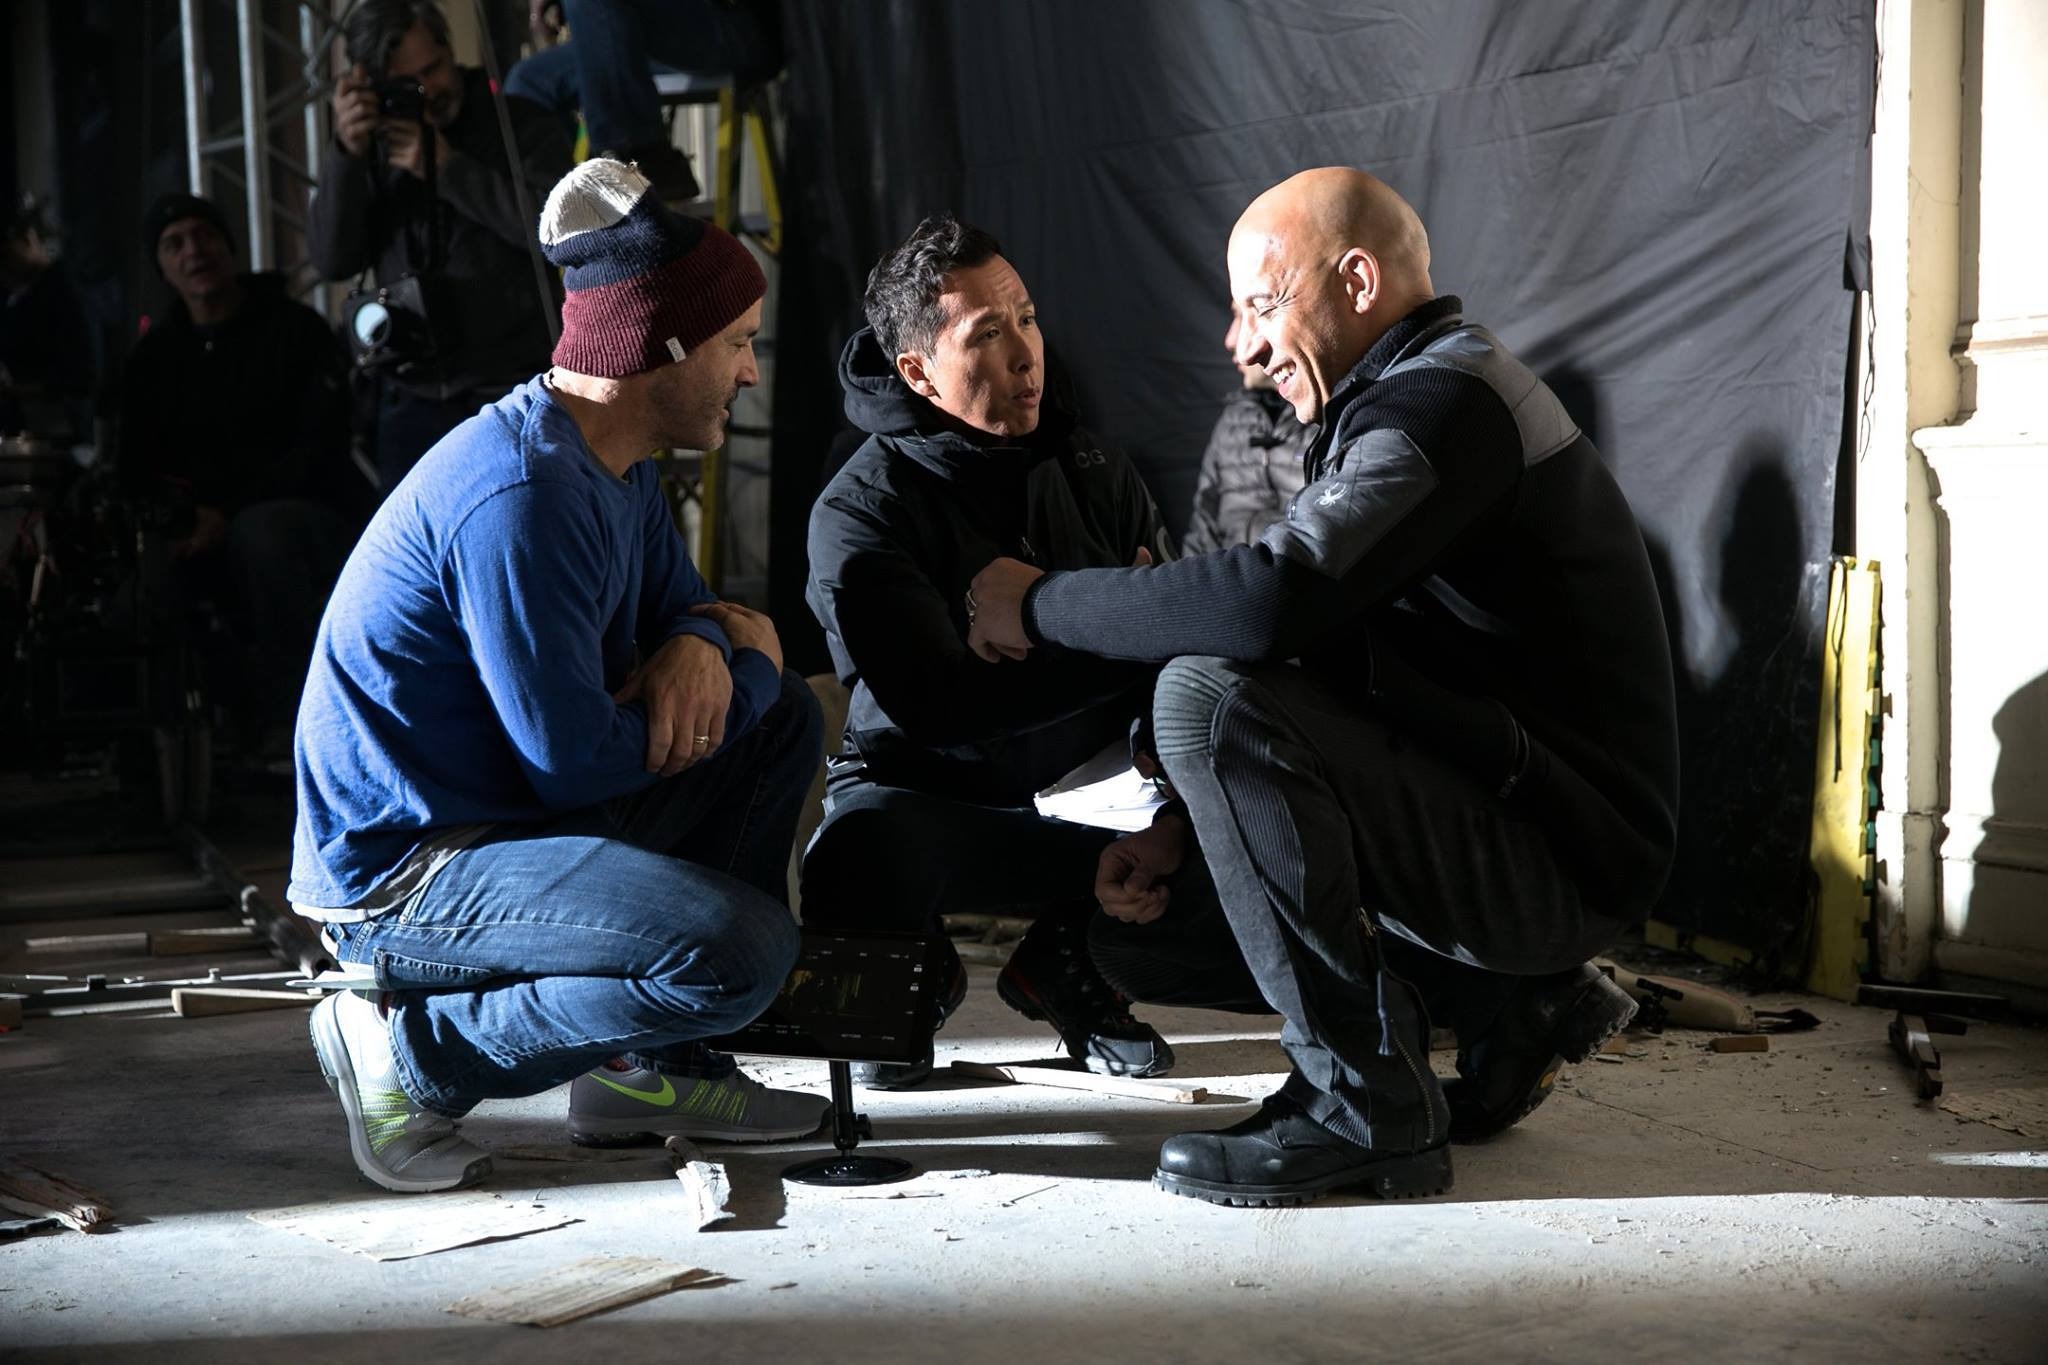 xxx return of xander cage filming